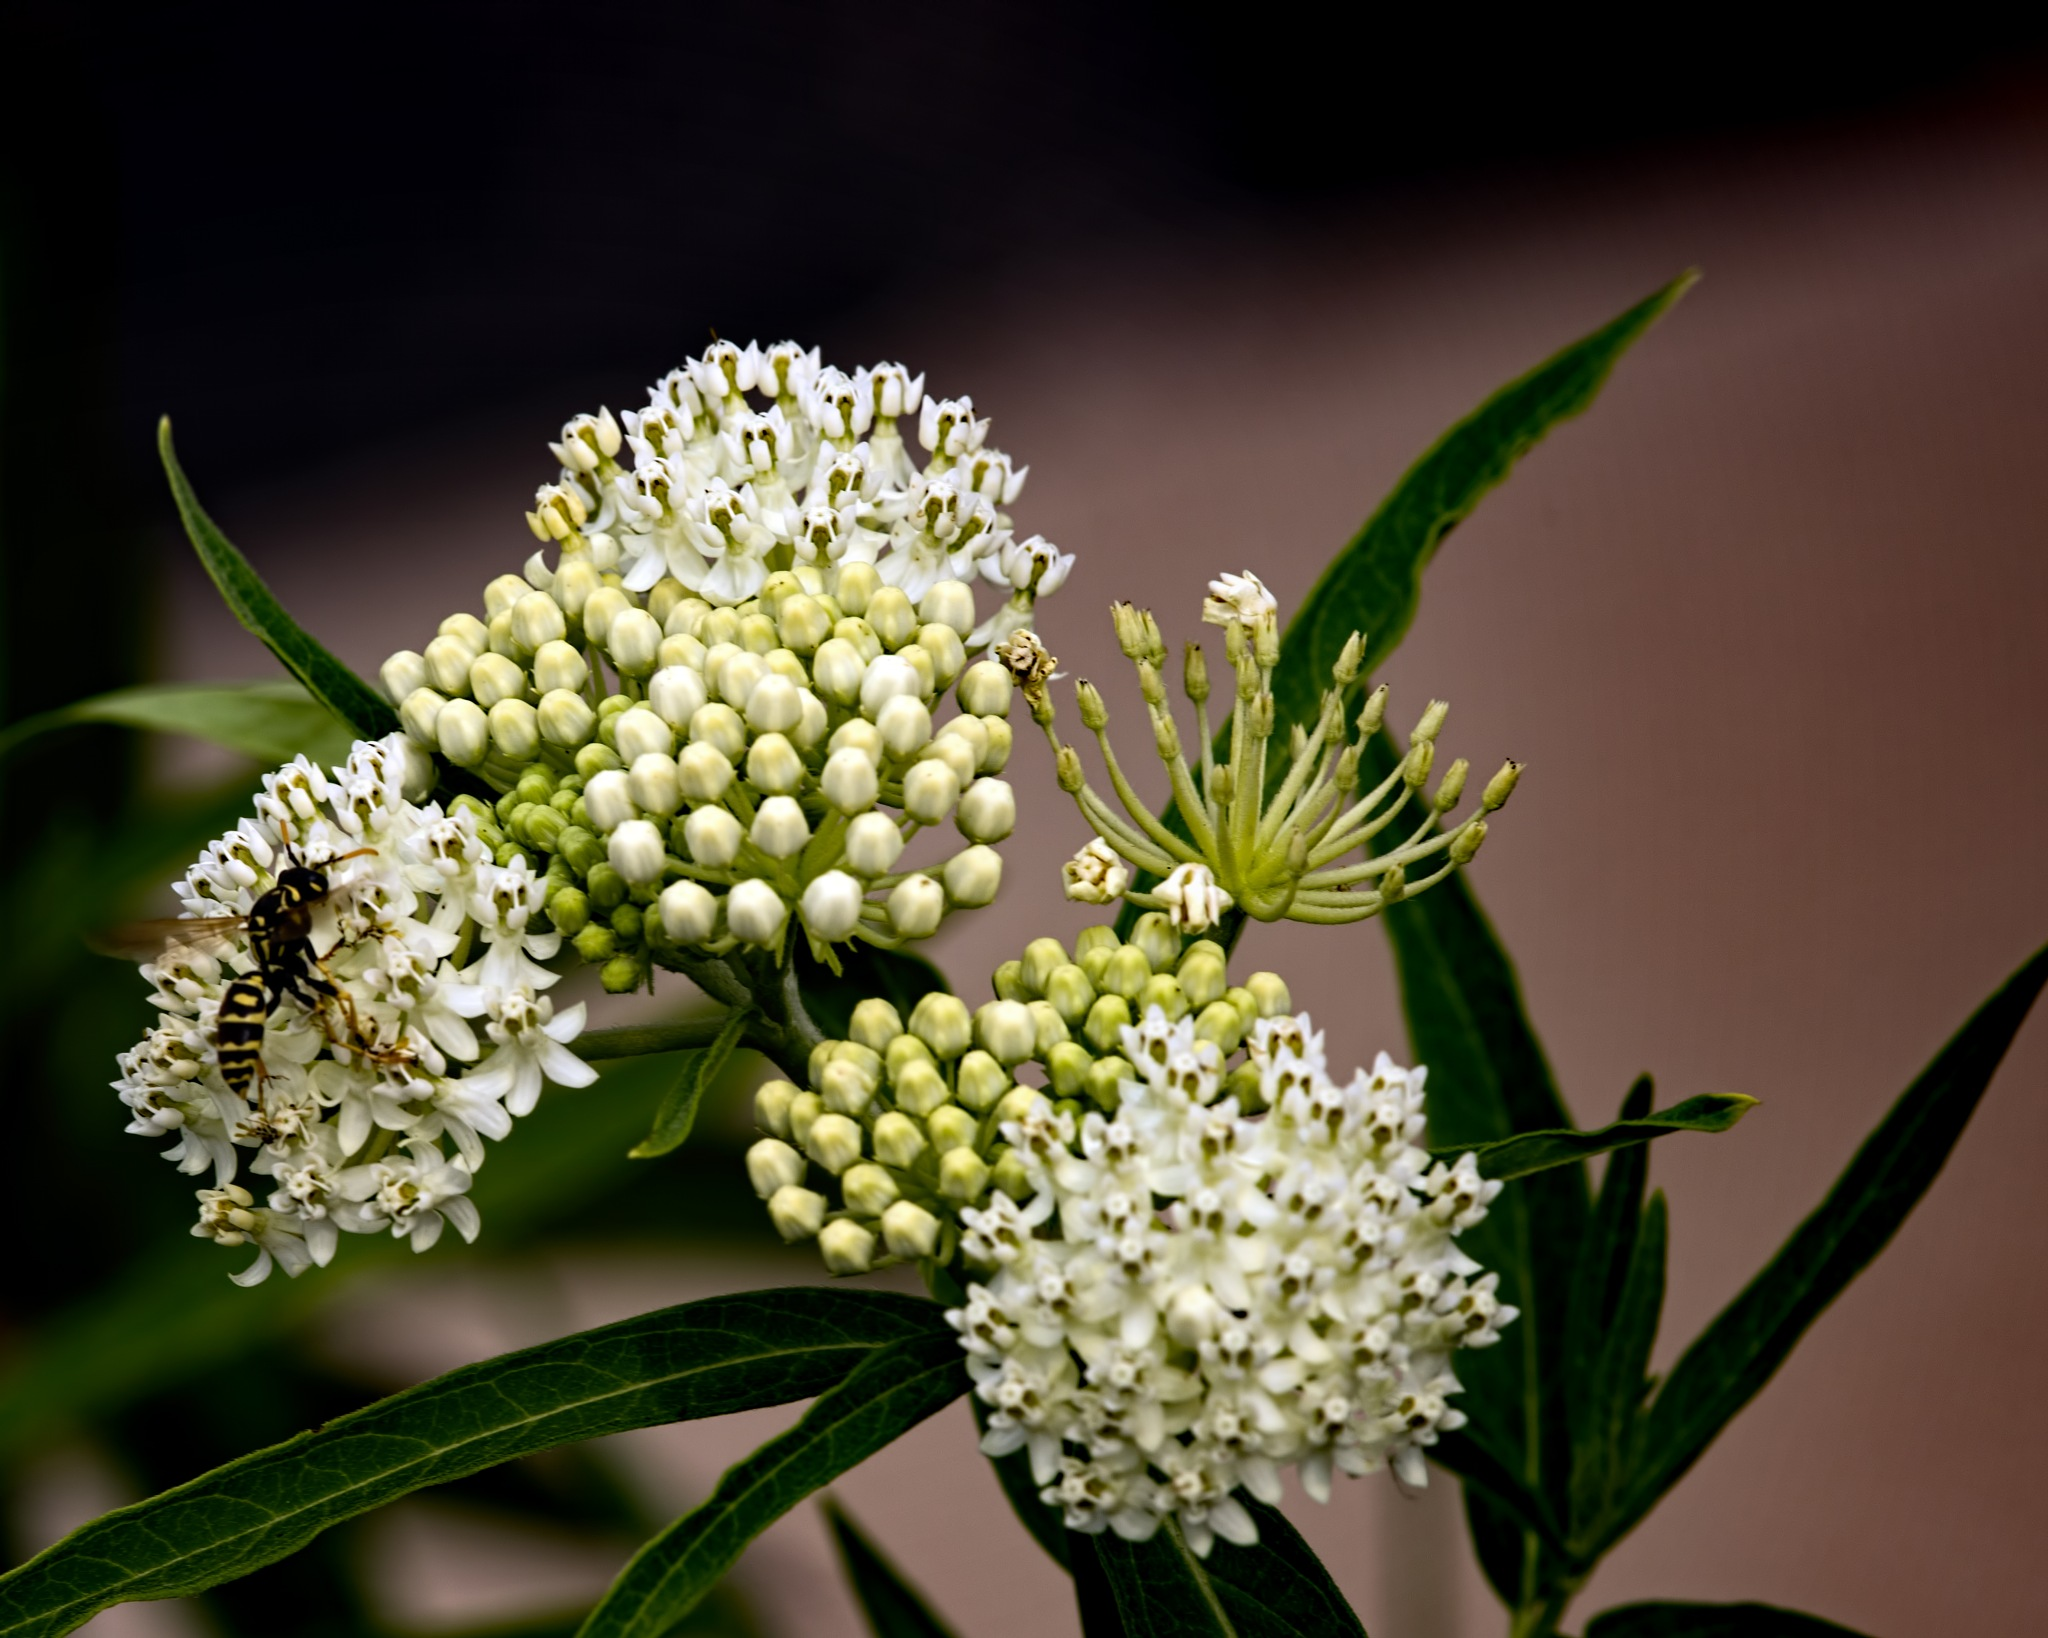 Butterfly Bush with Bee 0811 by ThomasJerger